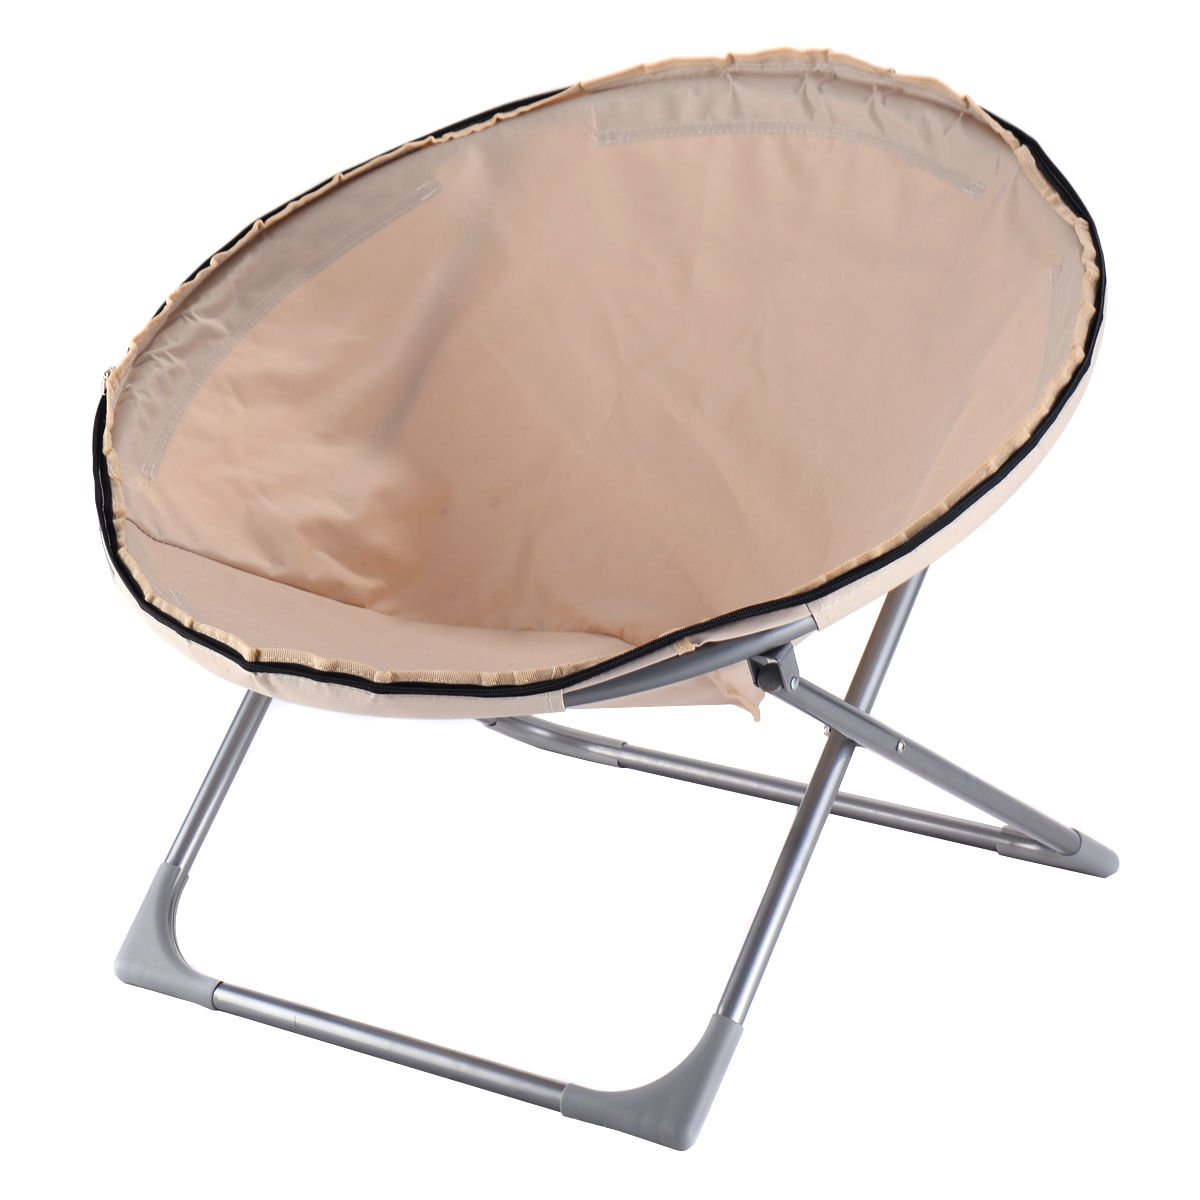 Amazon.com: Giantex Oversized Large Folding Saucer Moon Chair Corduroy Round  Seat Living Room (Beige): Kitchen U0026 Dining